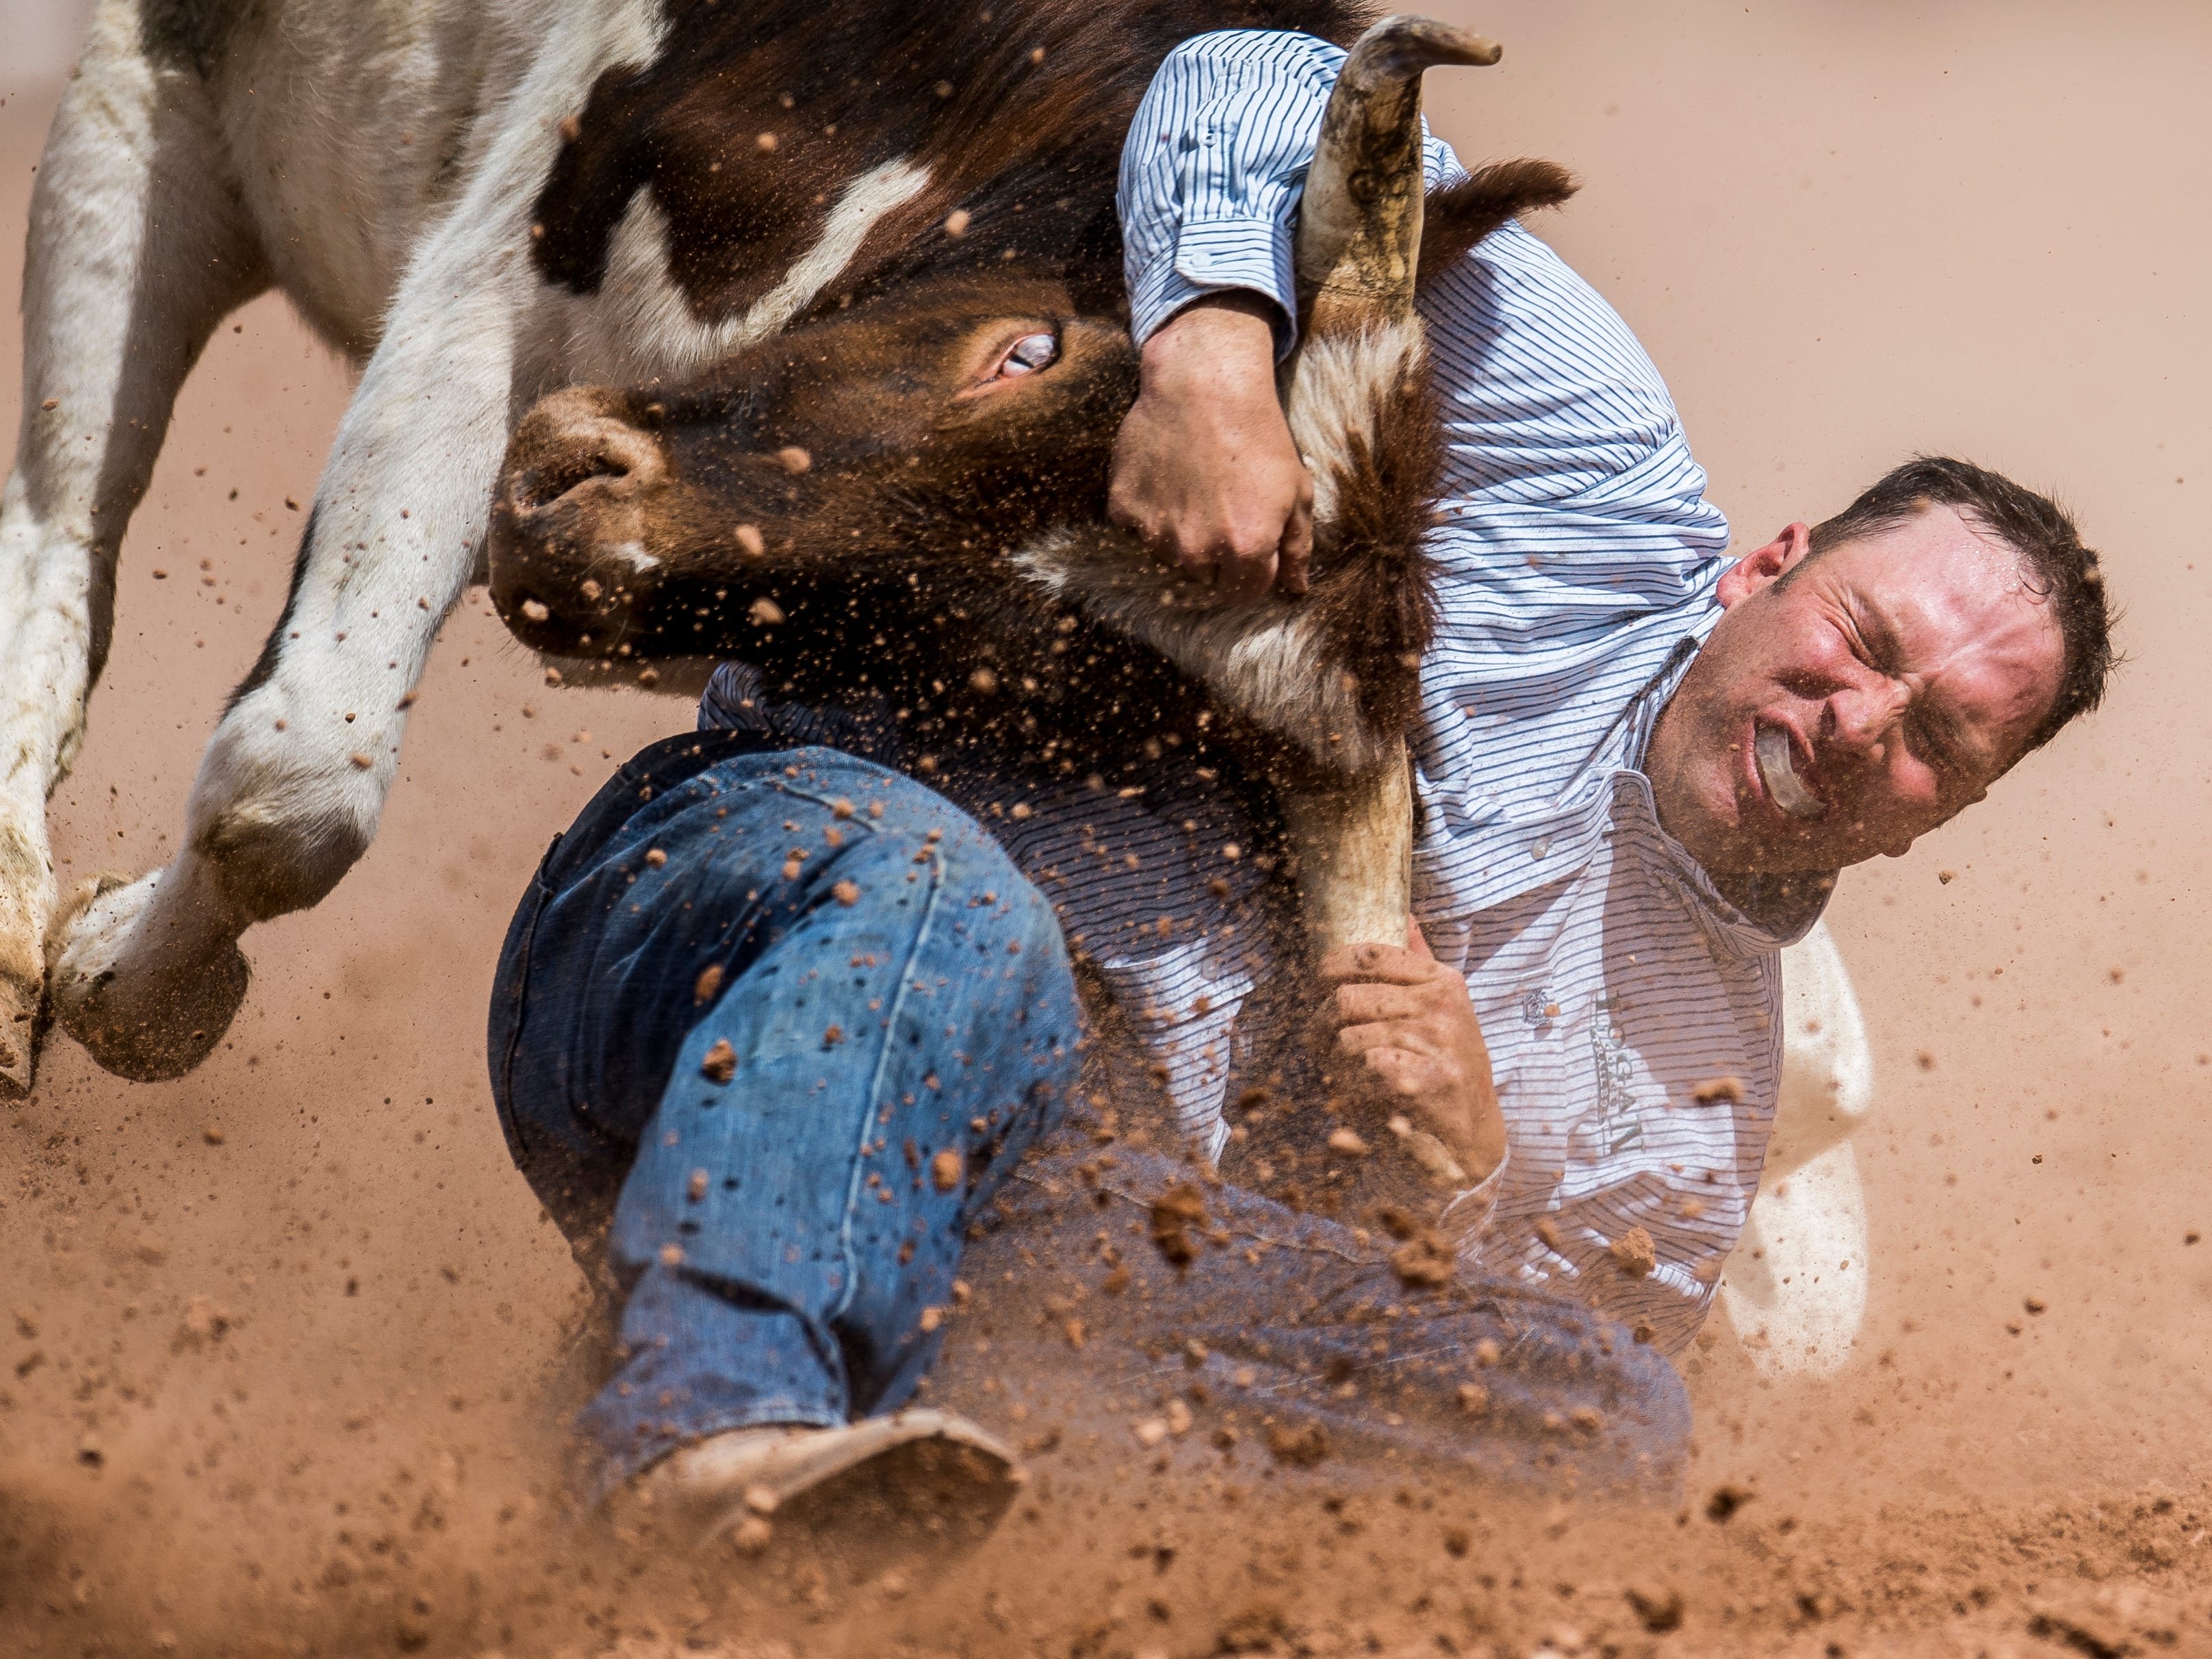 A cowboy struggles to bring down a steer during the PRCA rodeo at the Iron County Fair in Parowan on Sept. 3, 2018.